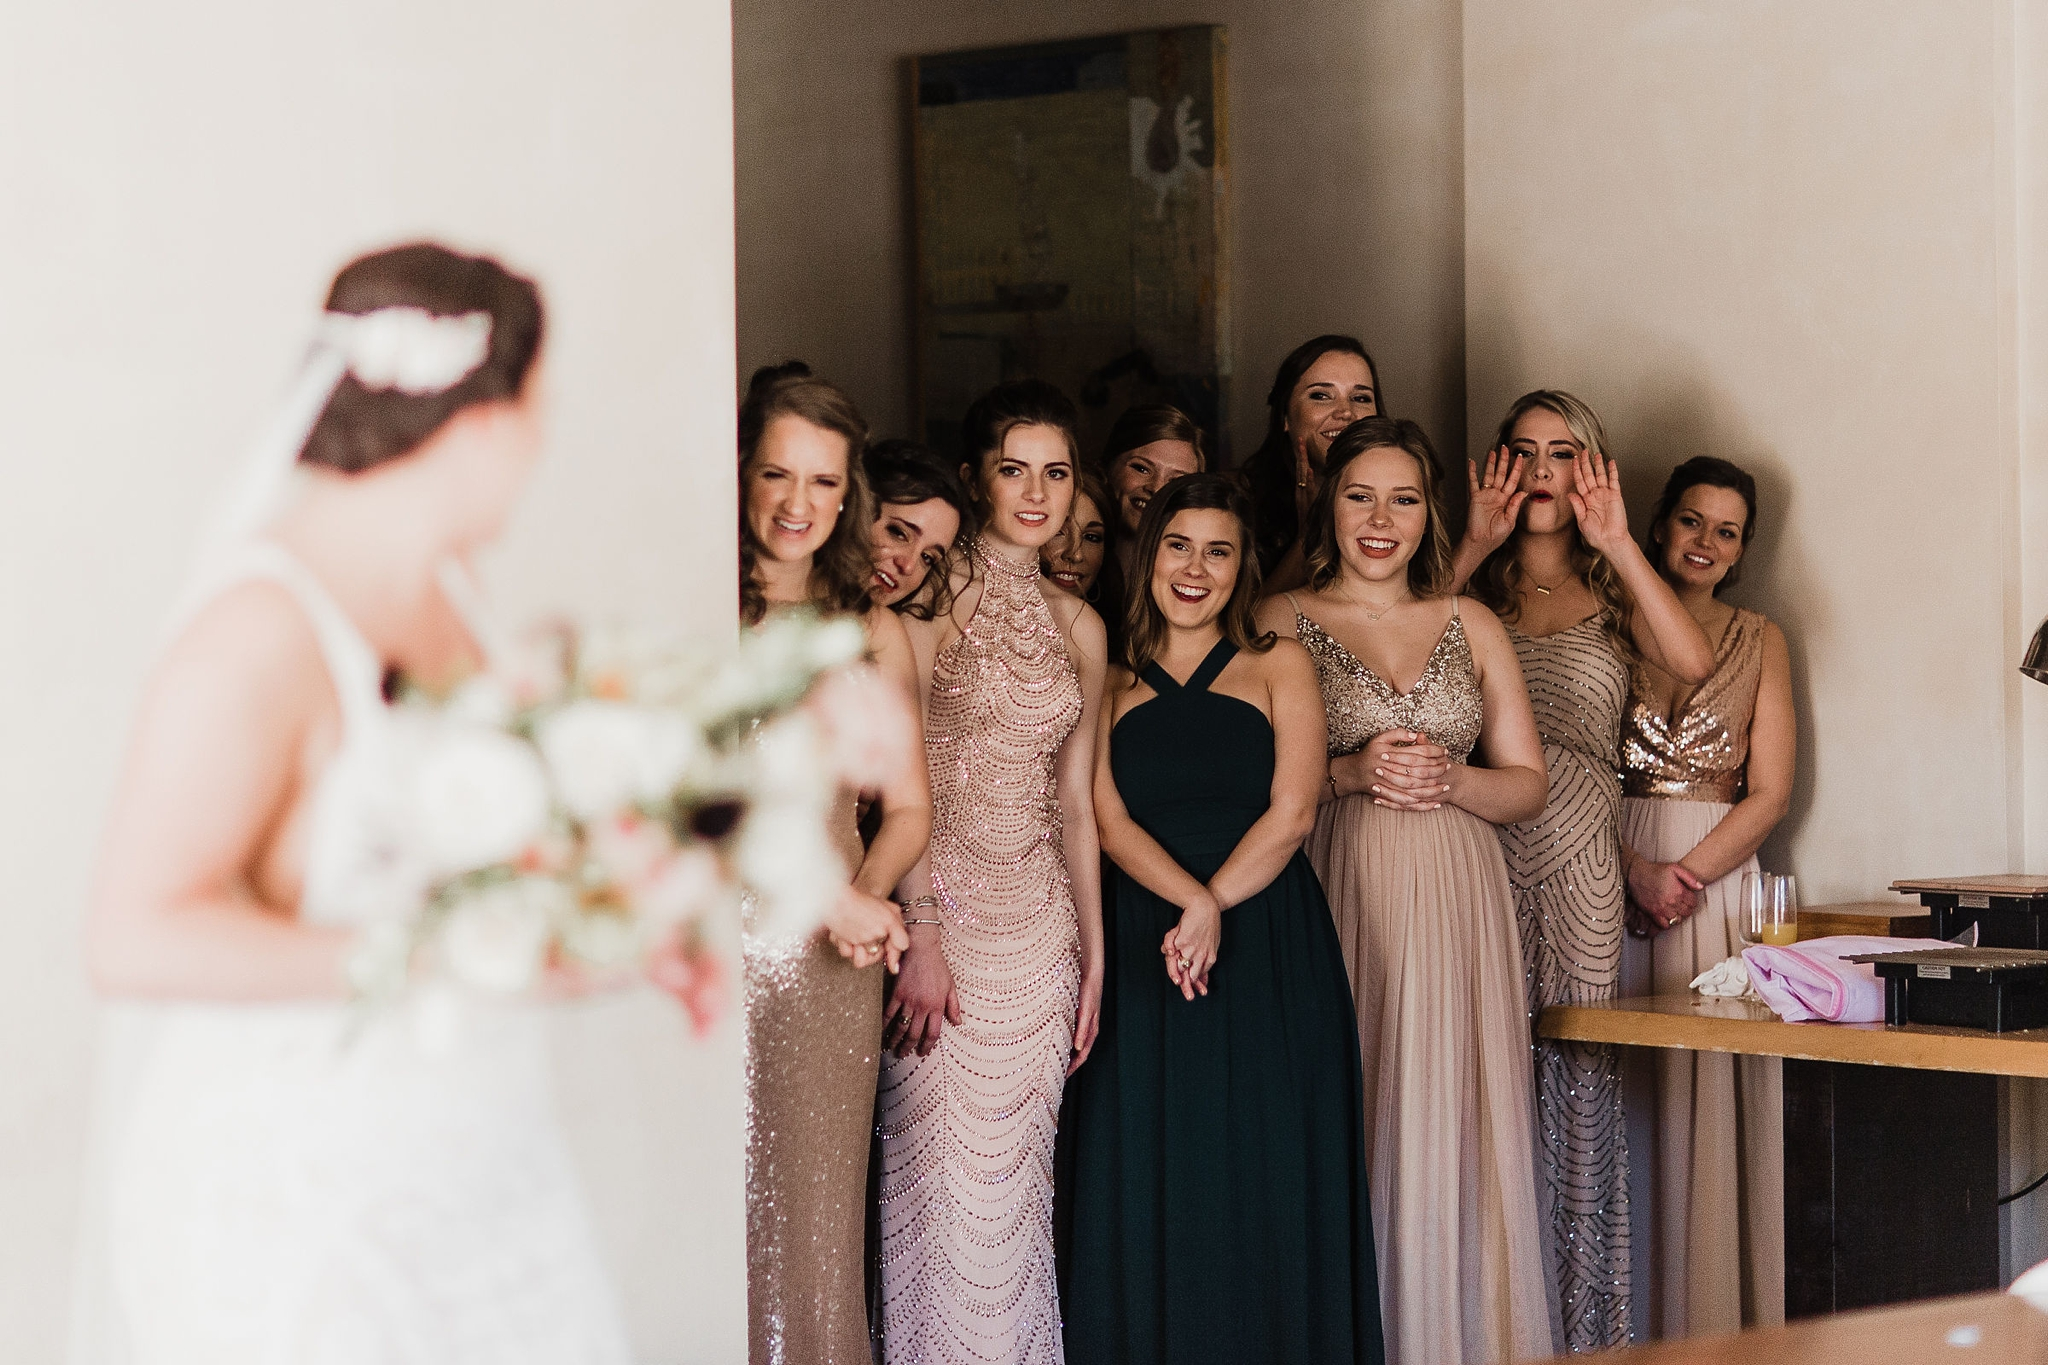 Alicia+lucia+photography+-+albuquerque+wedding+photographer+-+santa+fe+wedding+photography+-+new+mexico+wedding+photographer+-+new+mexico+wedding+-+new+mexico+wedding+-+colorado+wedding+-+bridesmaids+-+bridesmaid+style_0009.jpg